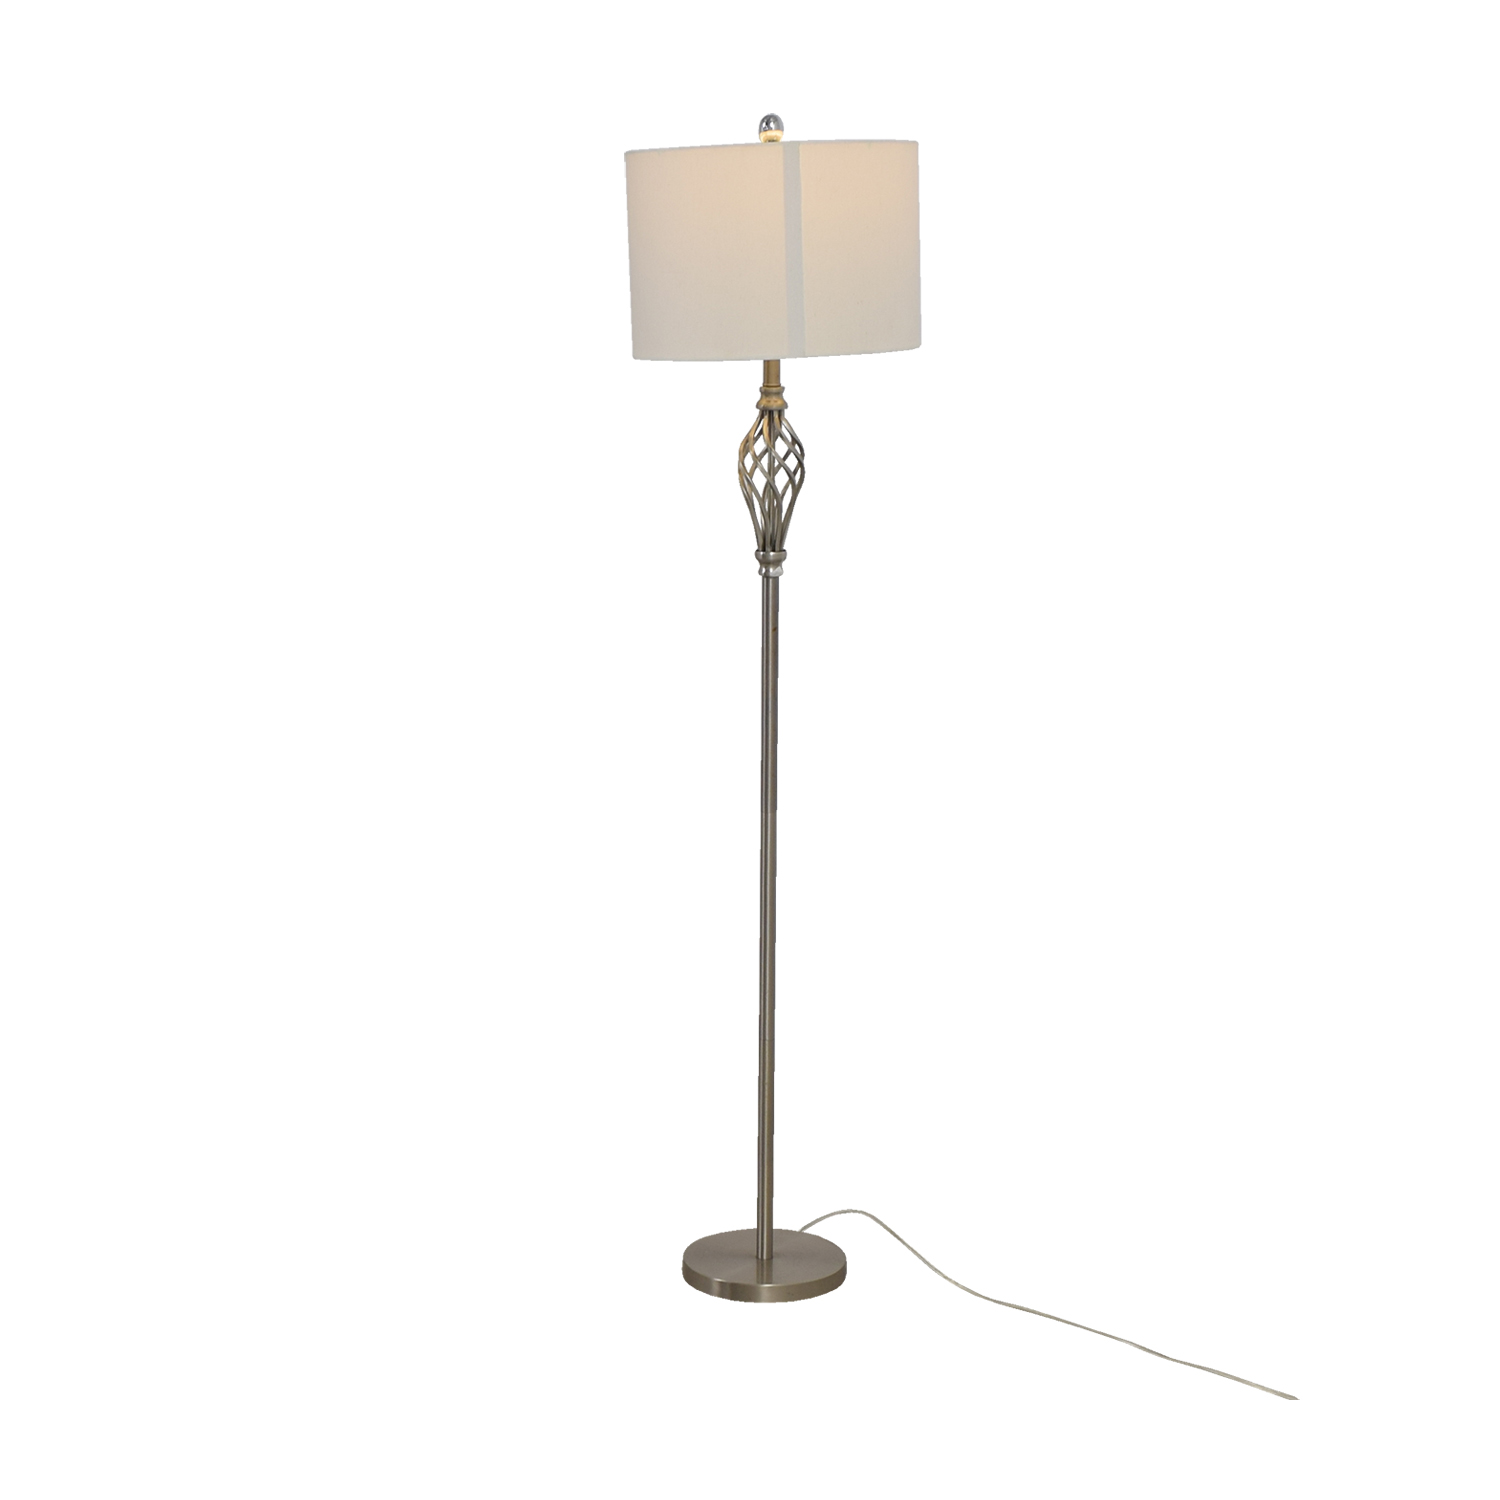 85 off silver decorative floor lamp decor silver decorative floor lamp on sale silver decorative floor lamp used aloadofball Image collections